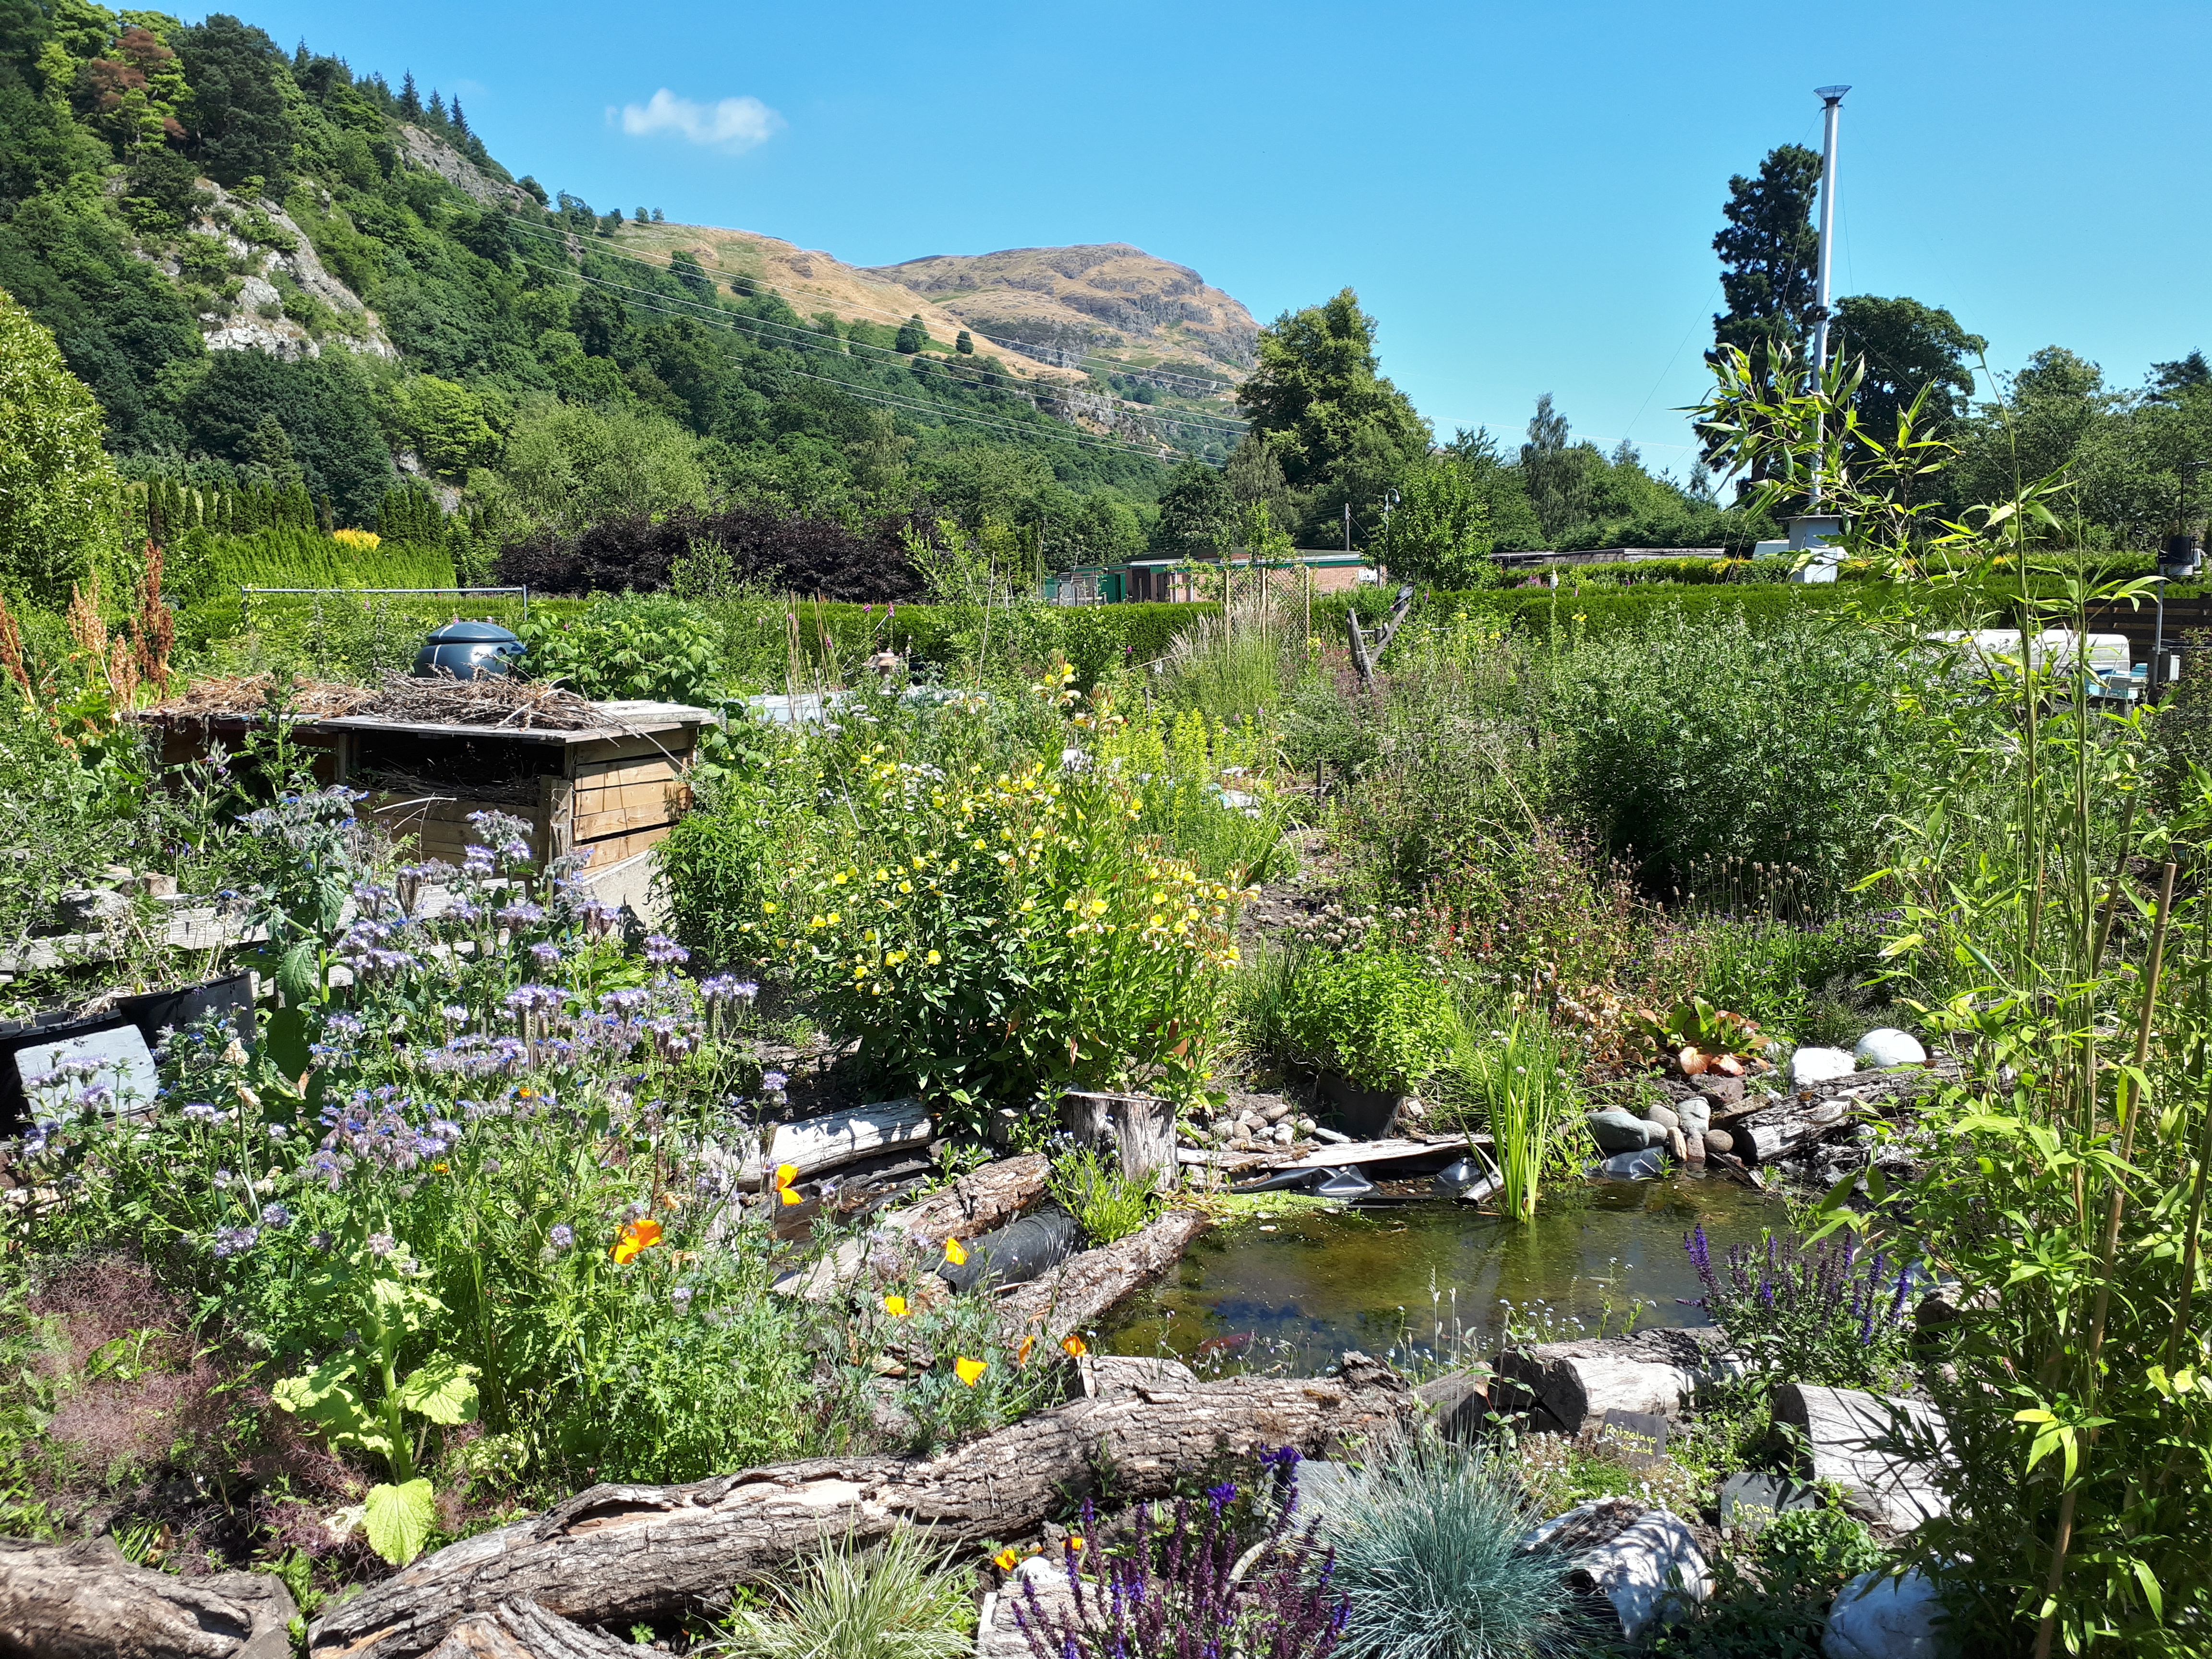 A picture of the garden, with Dumyat in the background